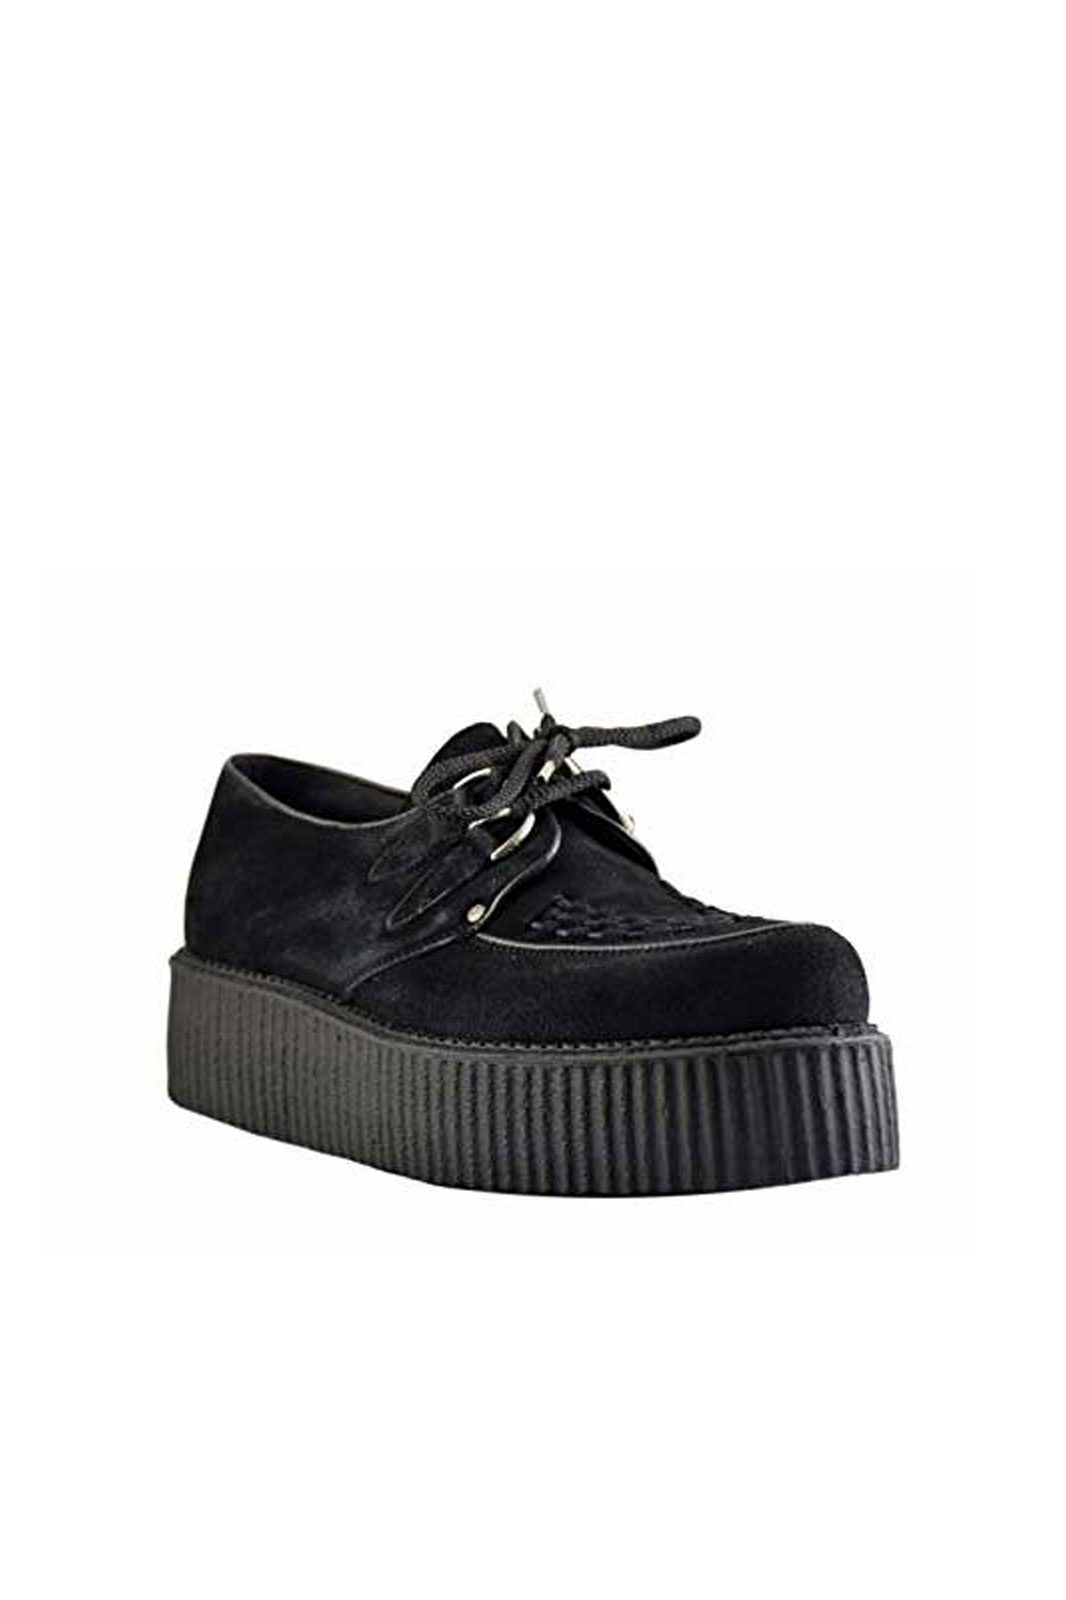 steelground creeper vegan suede d-ring